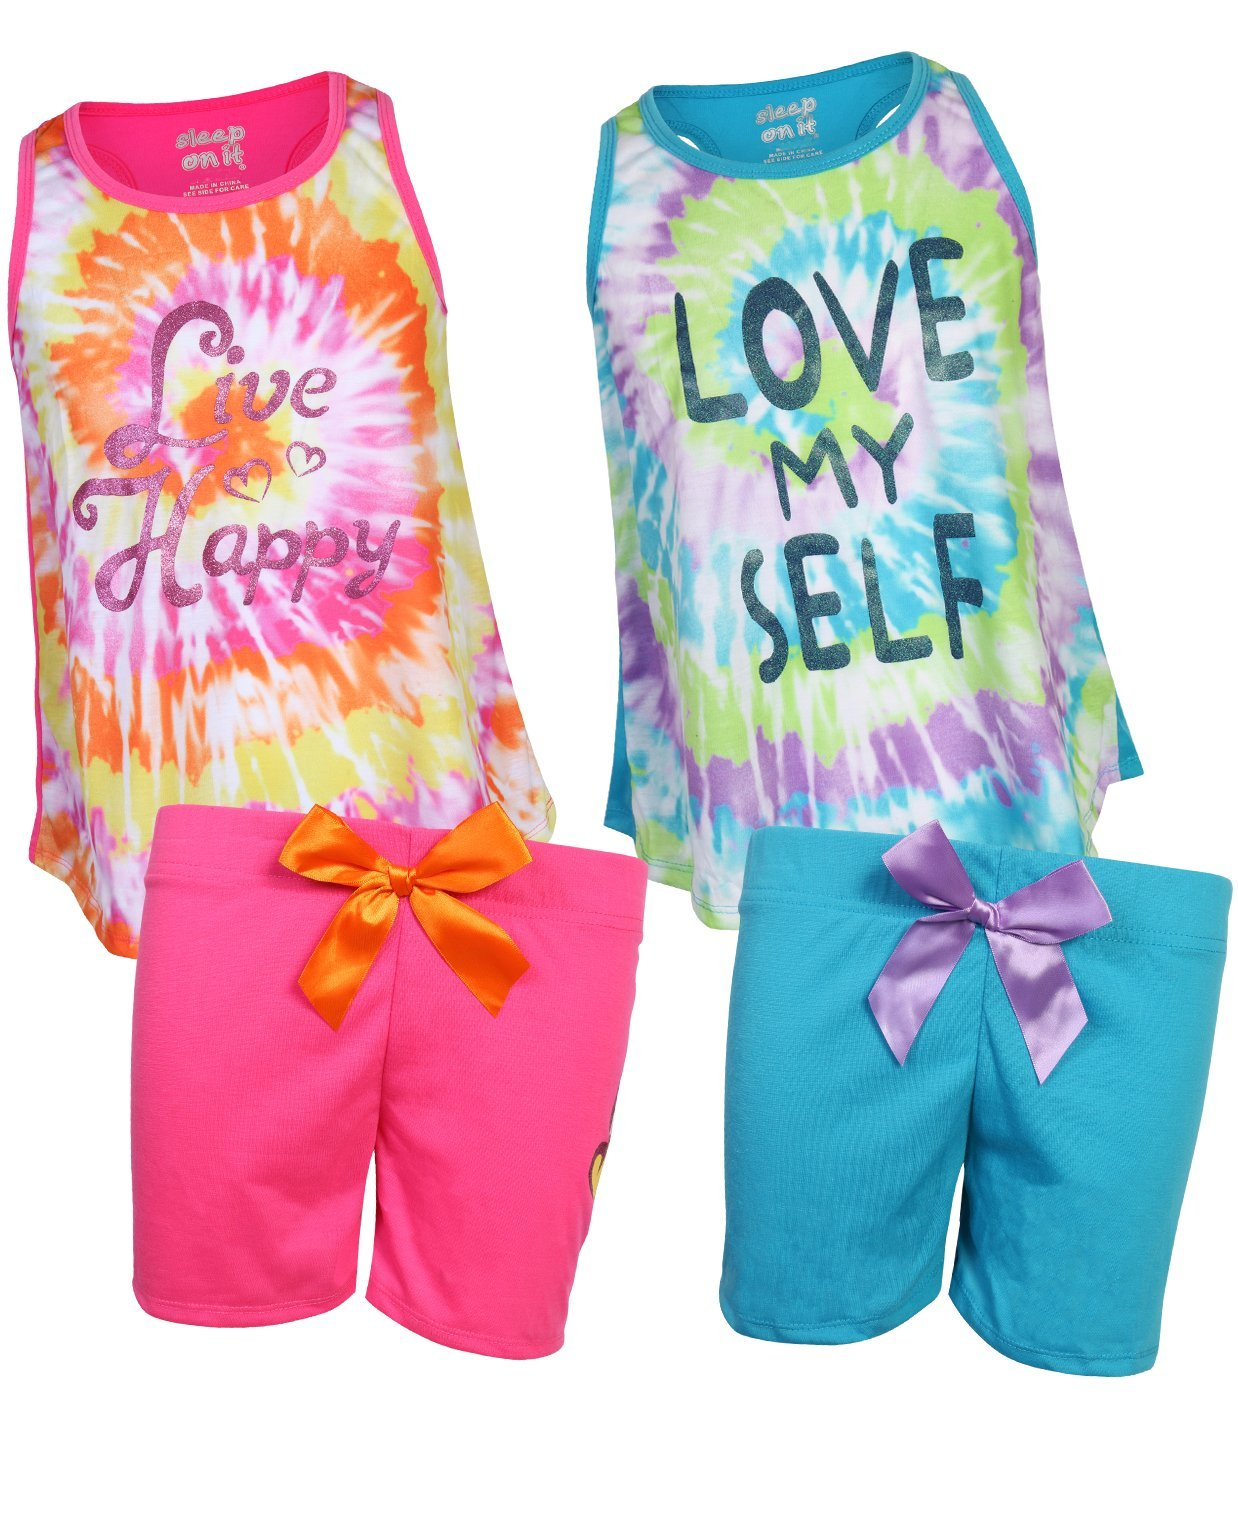 Sleep On It Girls 4-Piece Summer Pajama Short Set (2 Full Sets) Tie-Dye, Size 7/8'